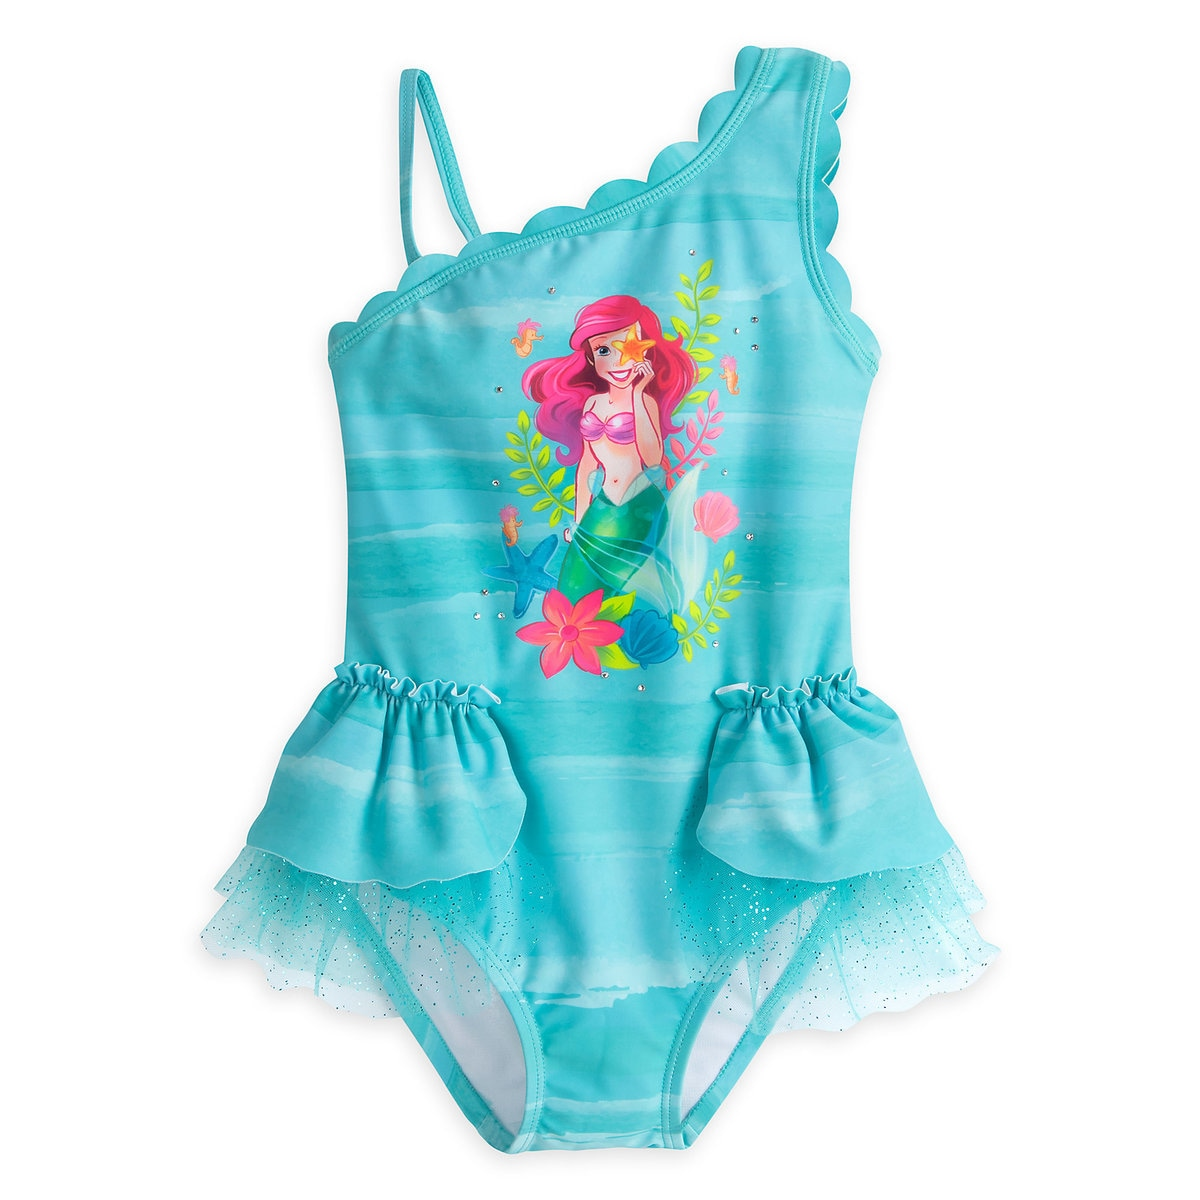 0d8b2988a43a2 Product Image of Ariel Deluxe Swimsuit for Girls # 1